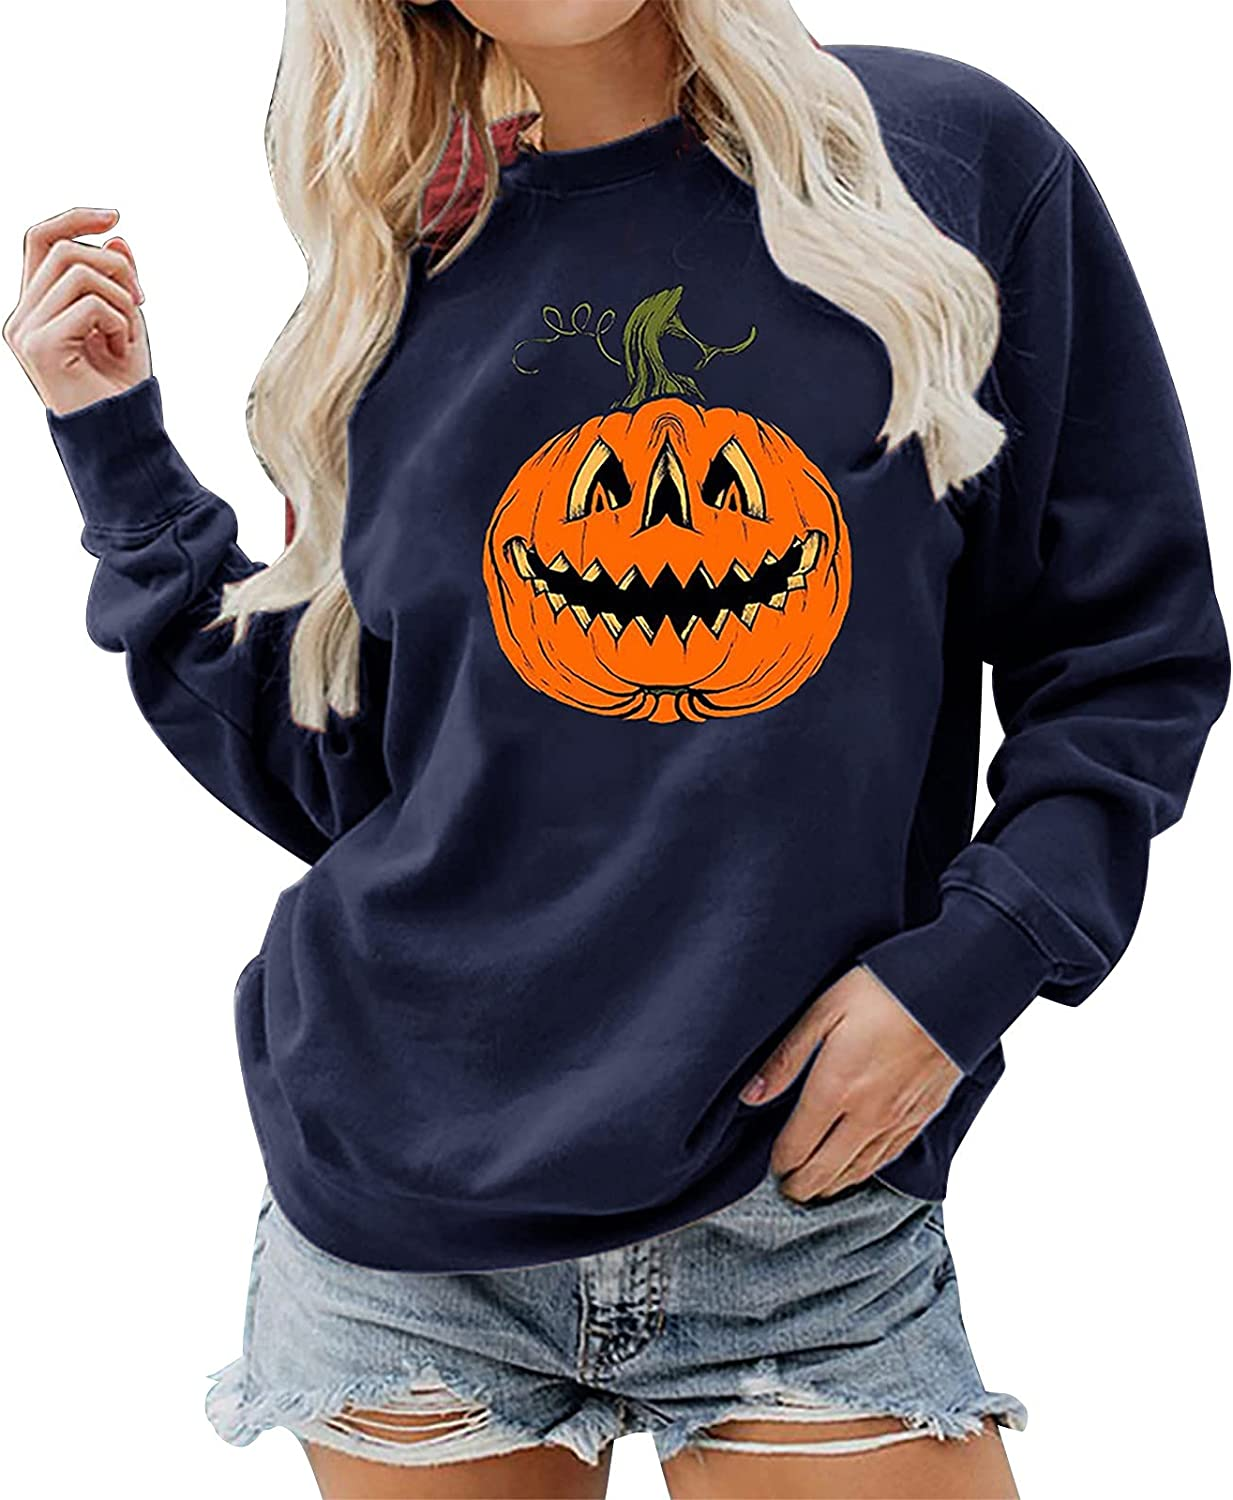 VonVonCo Pullover Sweaters for Women Personality Print Blouses Round Neck Fashion Loose Long Sleeve Sweatshirt Tops